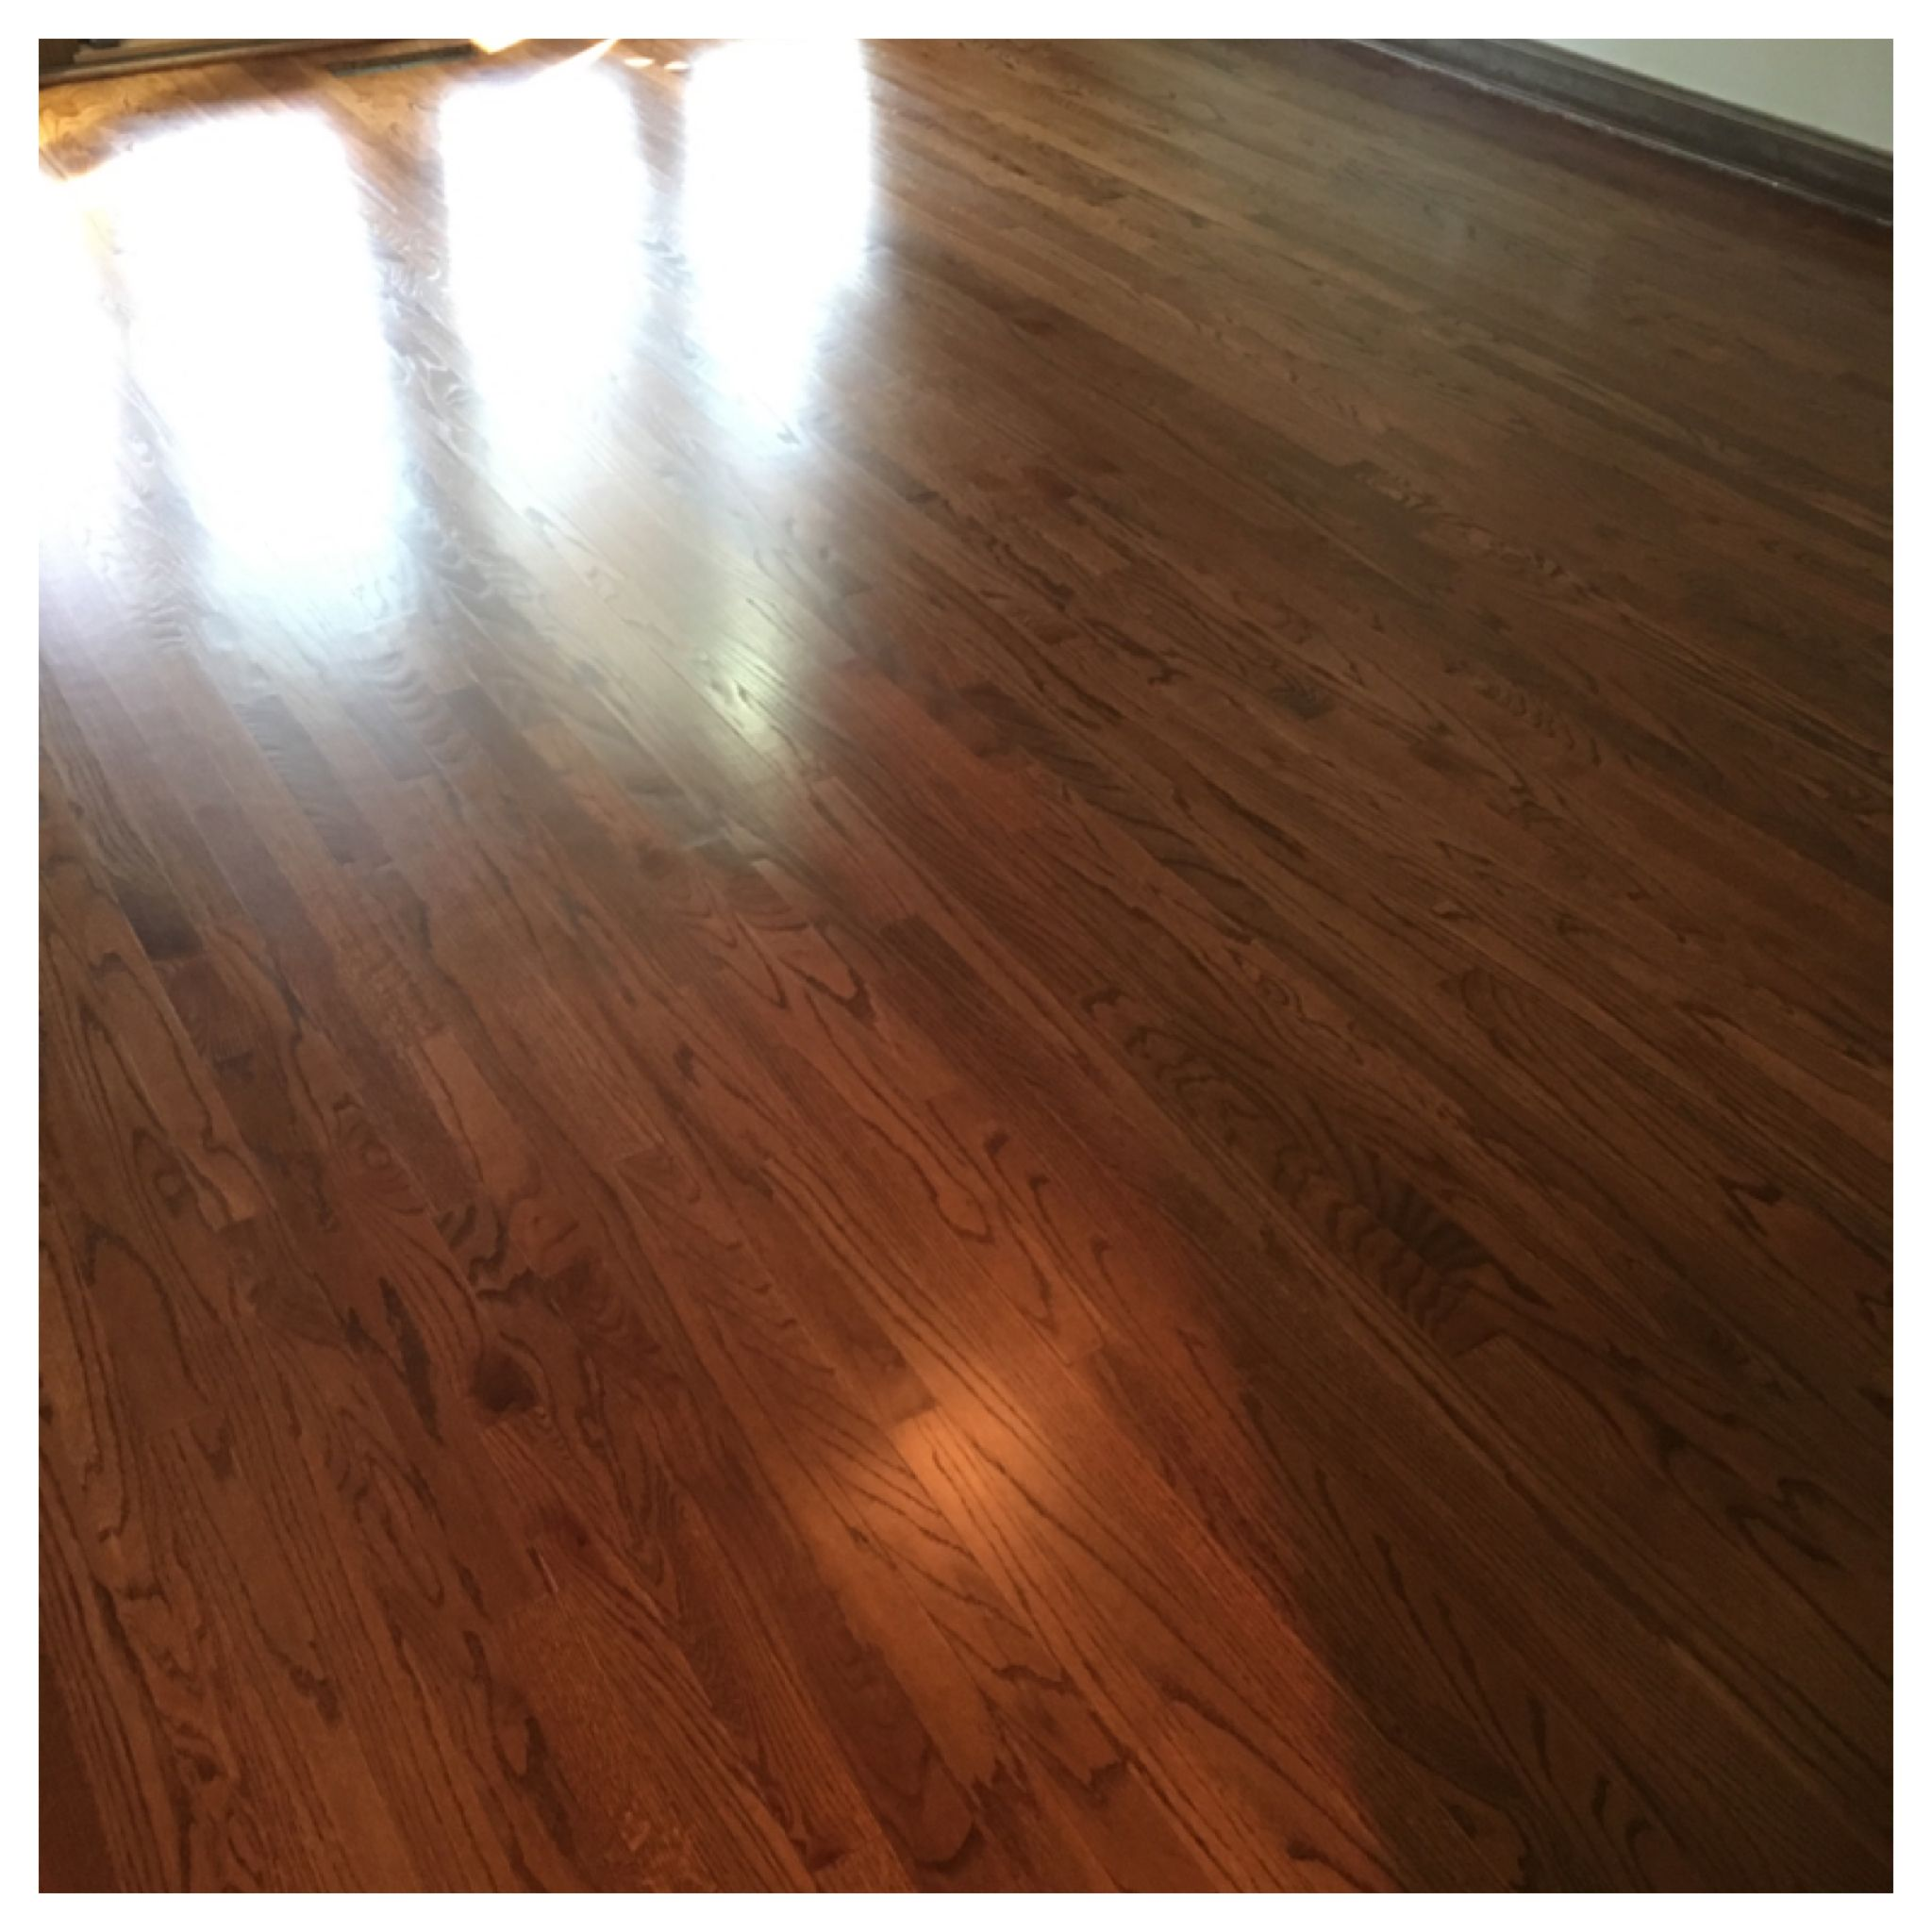 Refinishing Hardwood Floor English Chestnut Color And